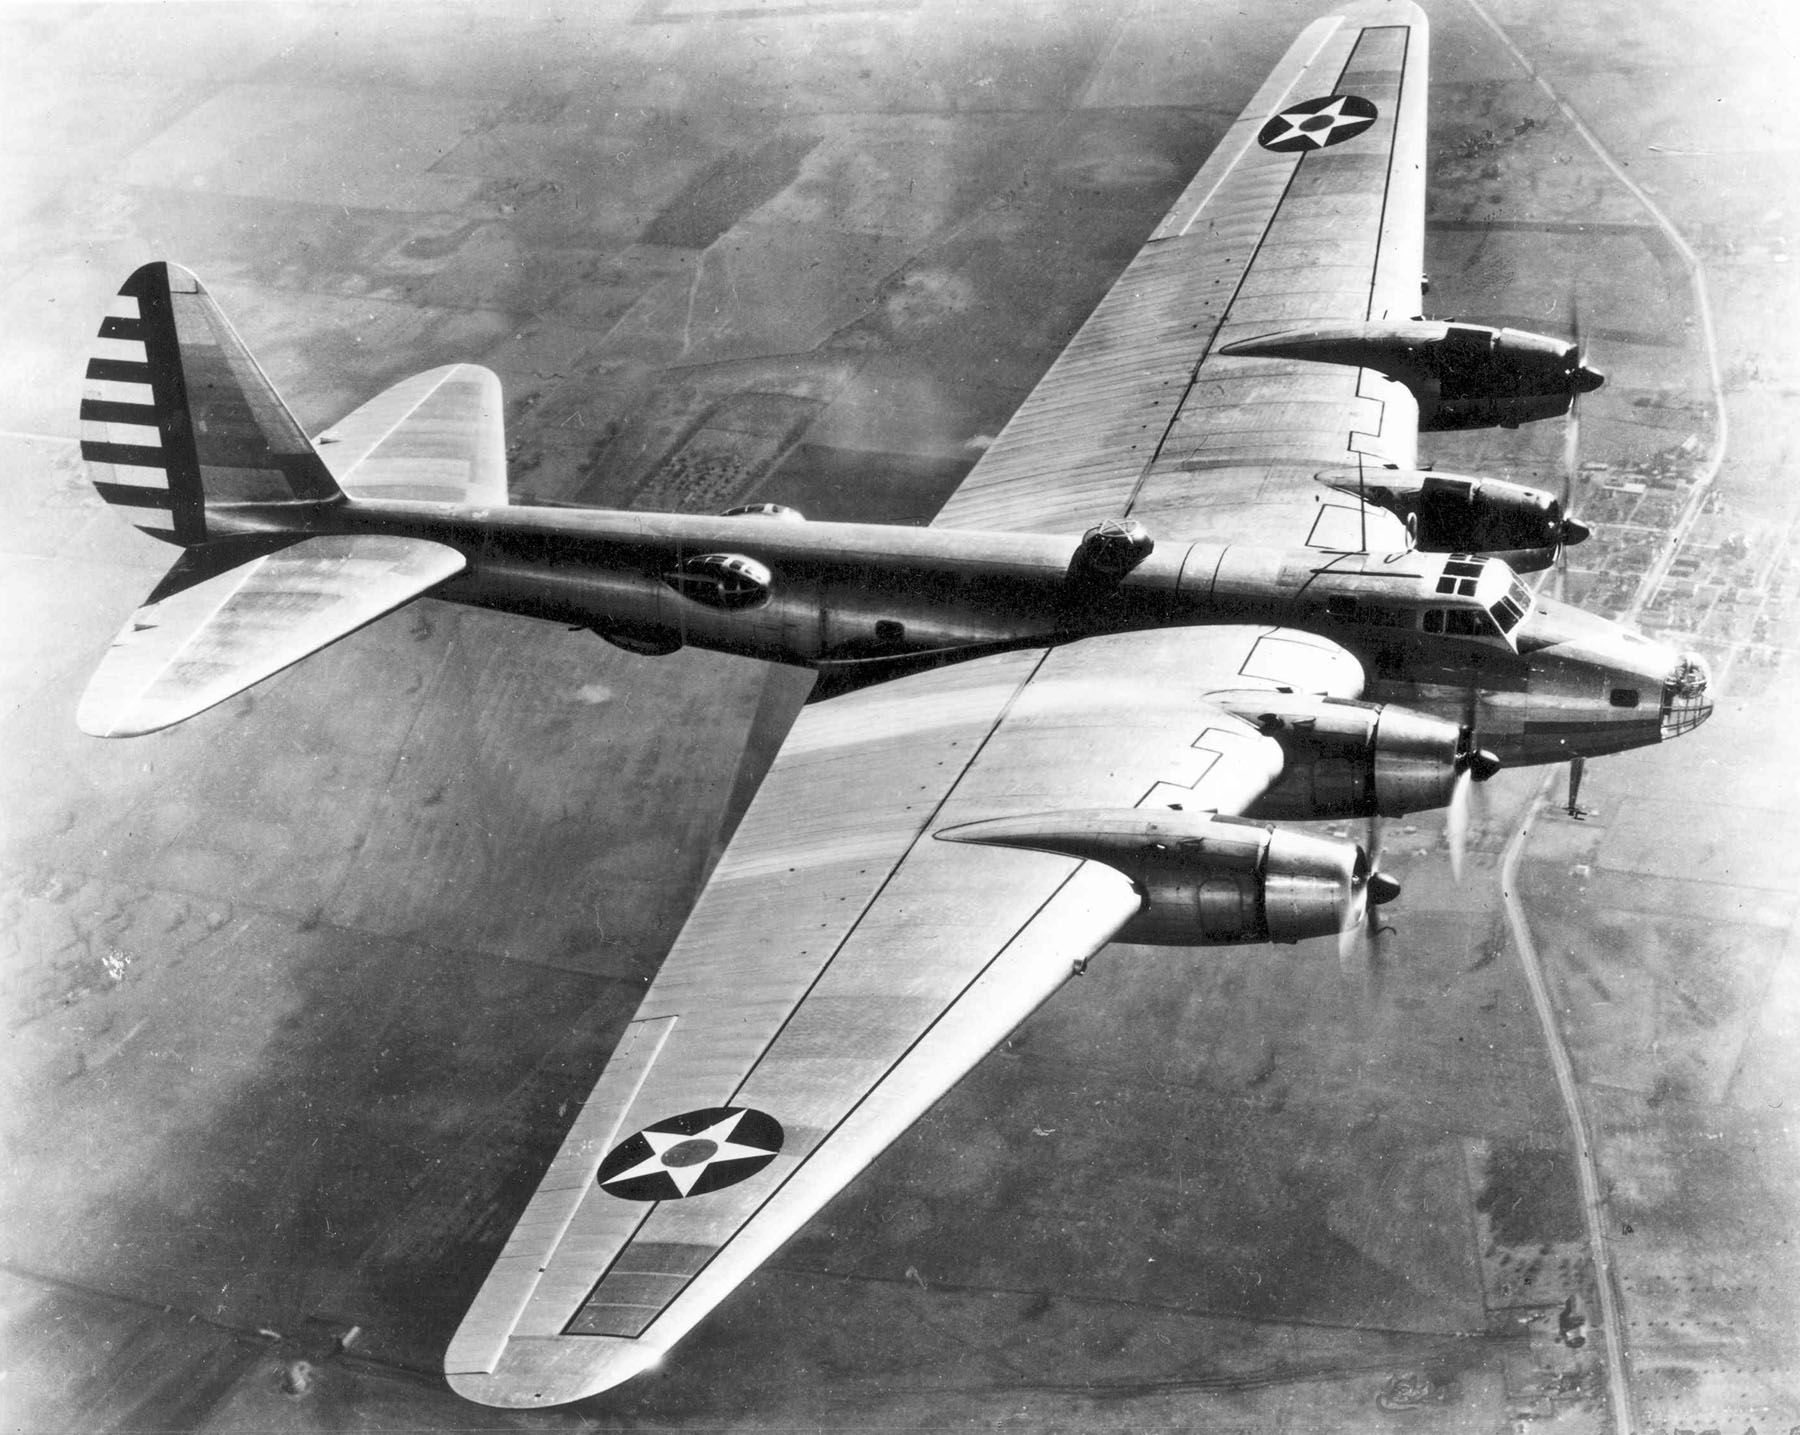 Aviation Charts For Android: Pre-war Super Bombers e National Museum of the US Air Force™ e Display,Chart